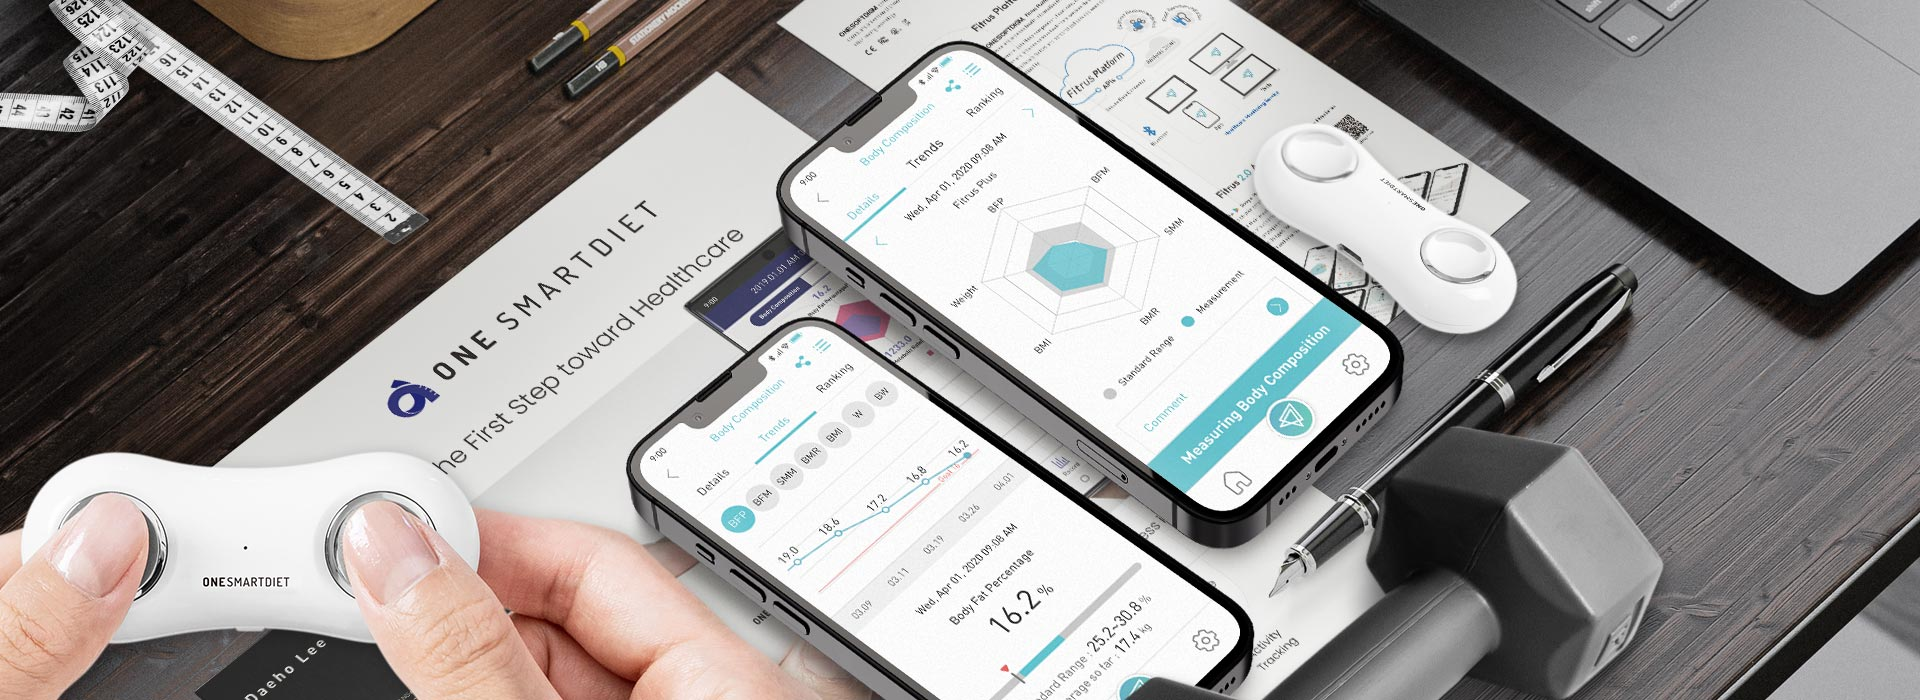 FITRUS, ONESMARTDIET, The Portable Body Composition Analyzer, Body Fat, Health Care, Fat Loss, Body Mass